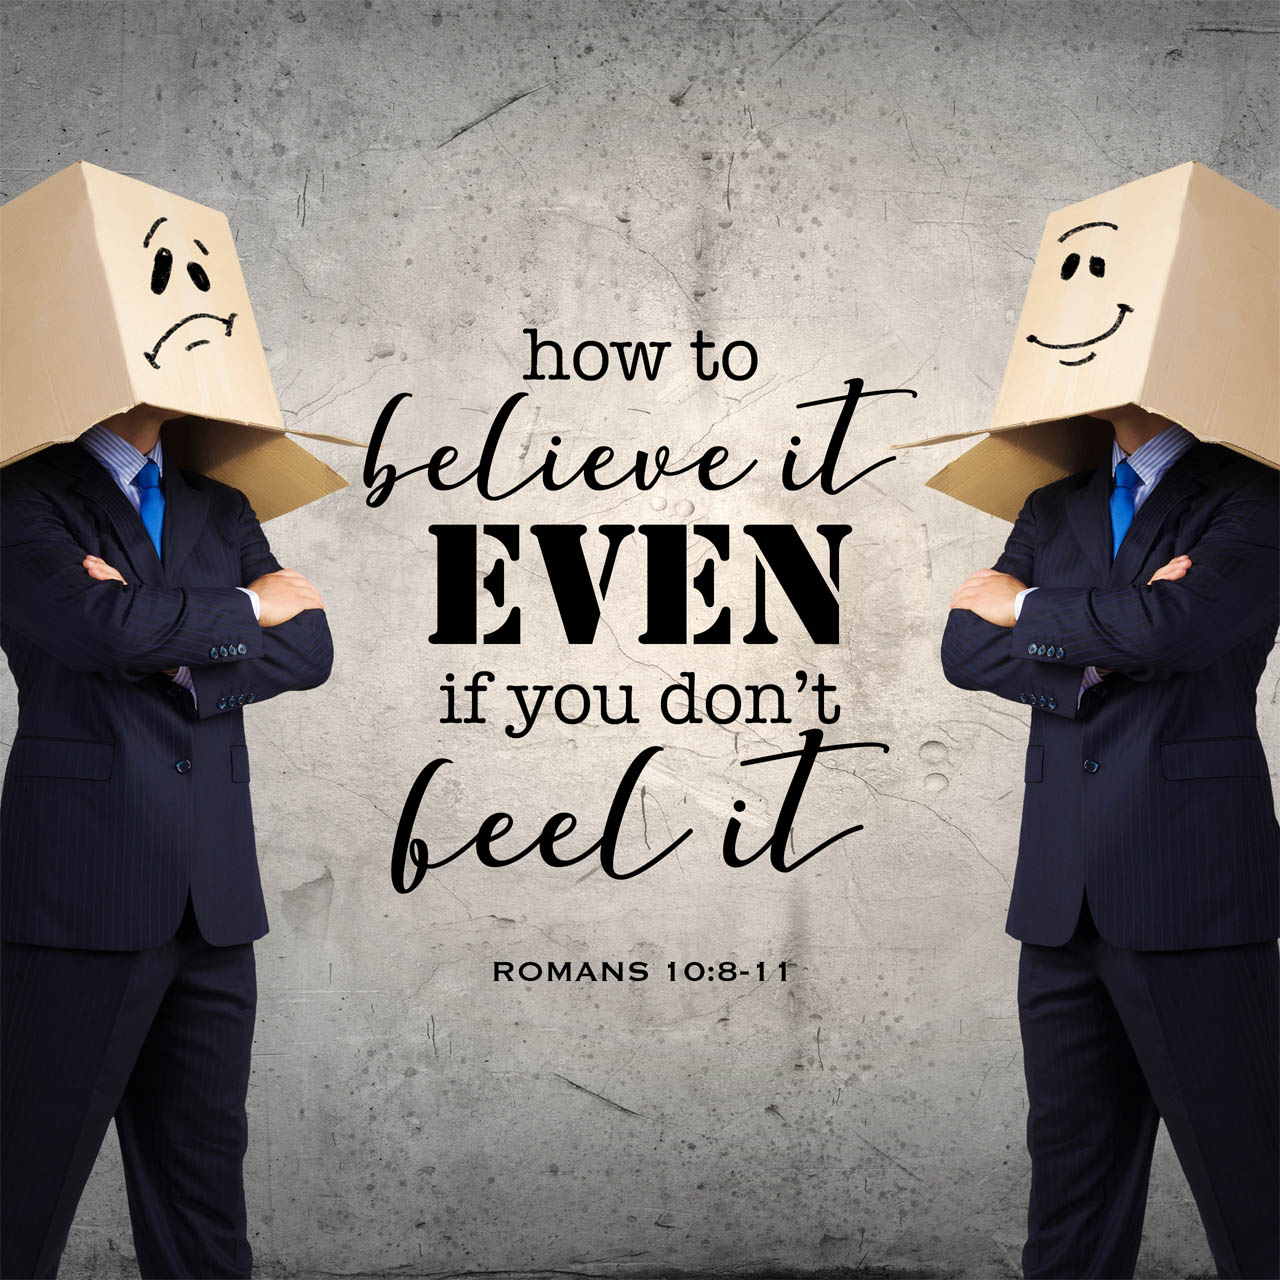 How to believe it even if you don't feel it sermon